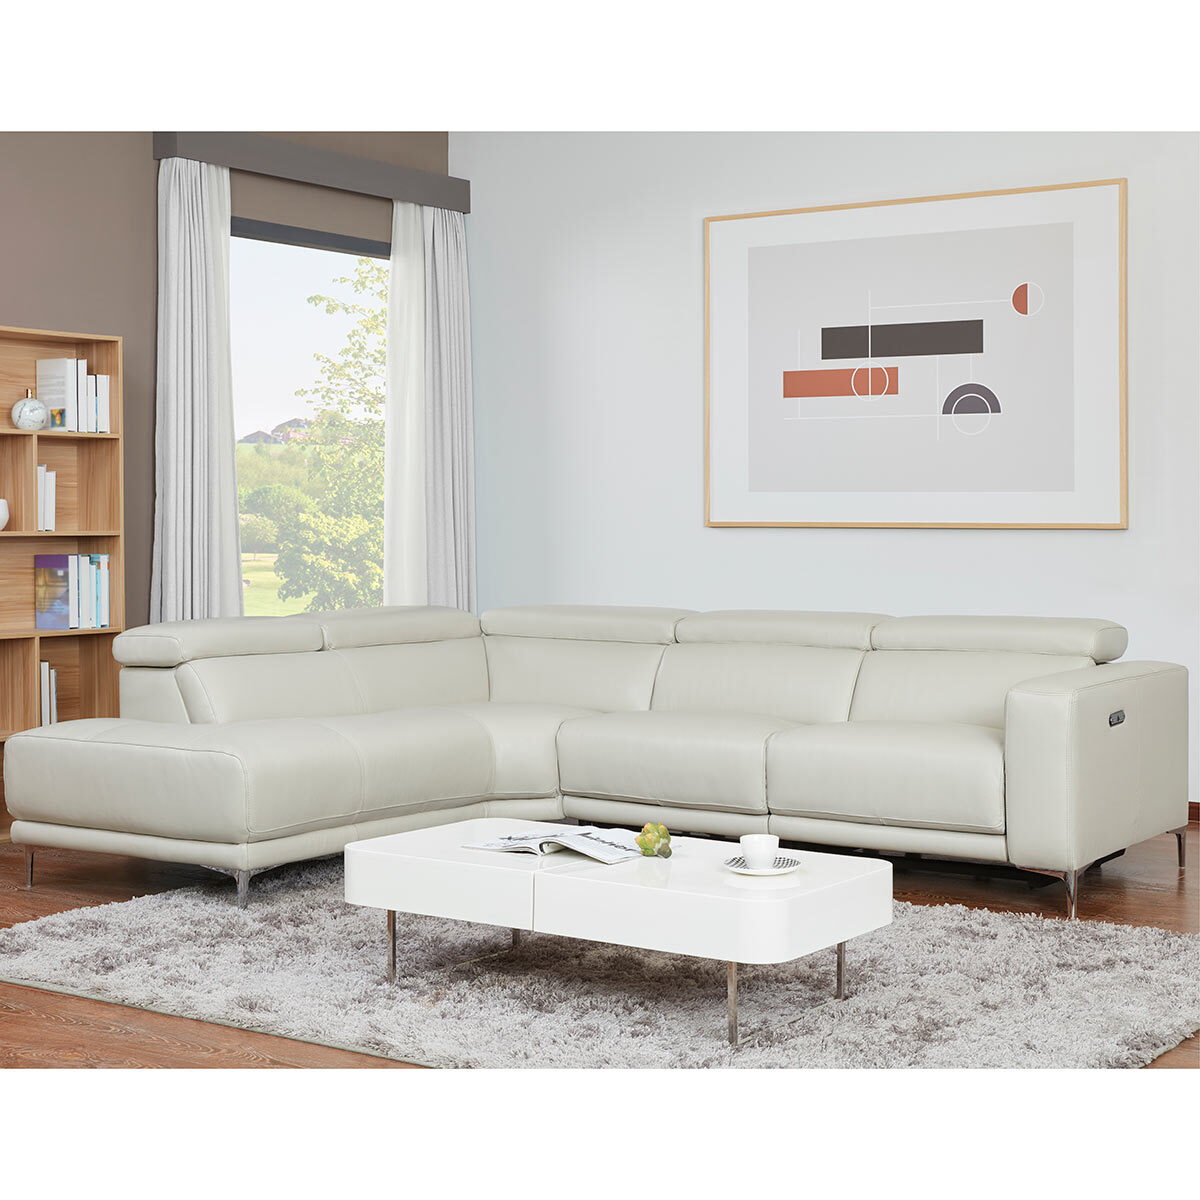 Kuka Redland Grey Leather Power Reclining Sectional Sofa Costco Uk